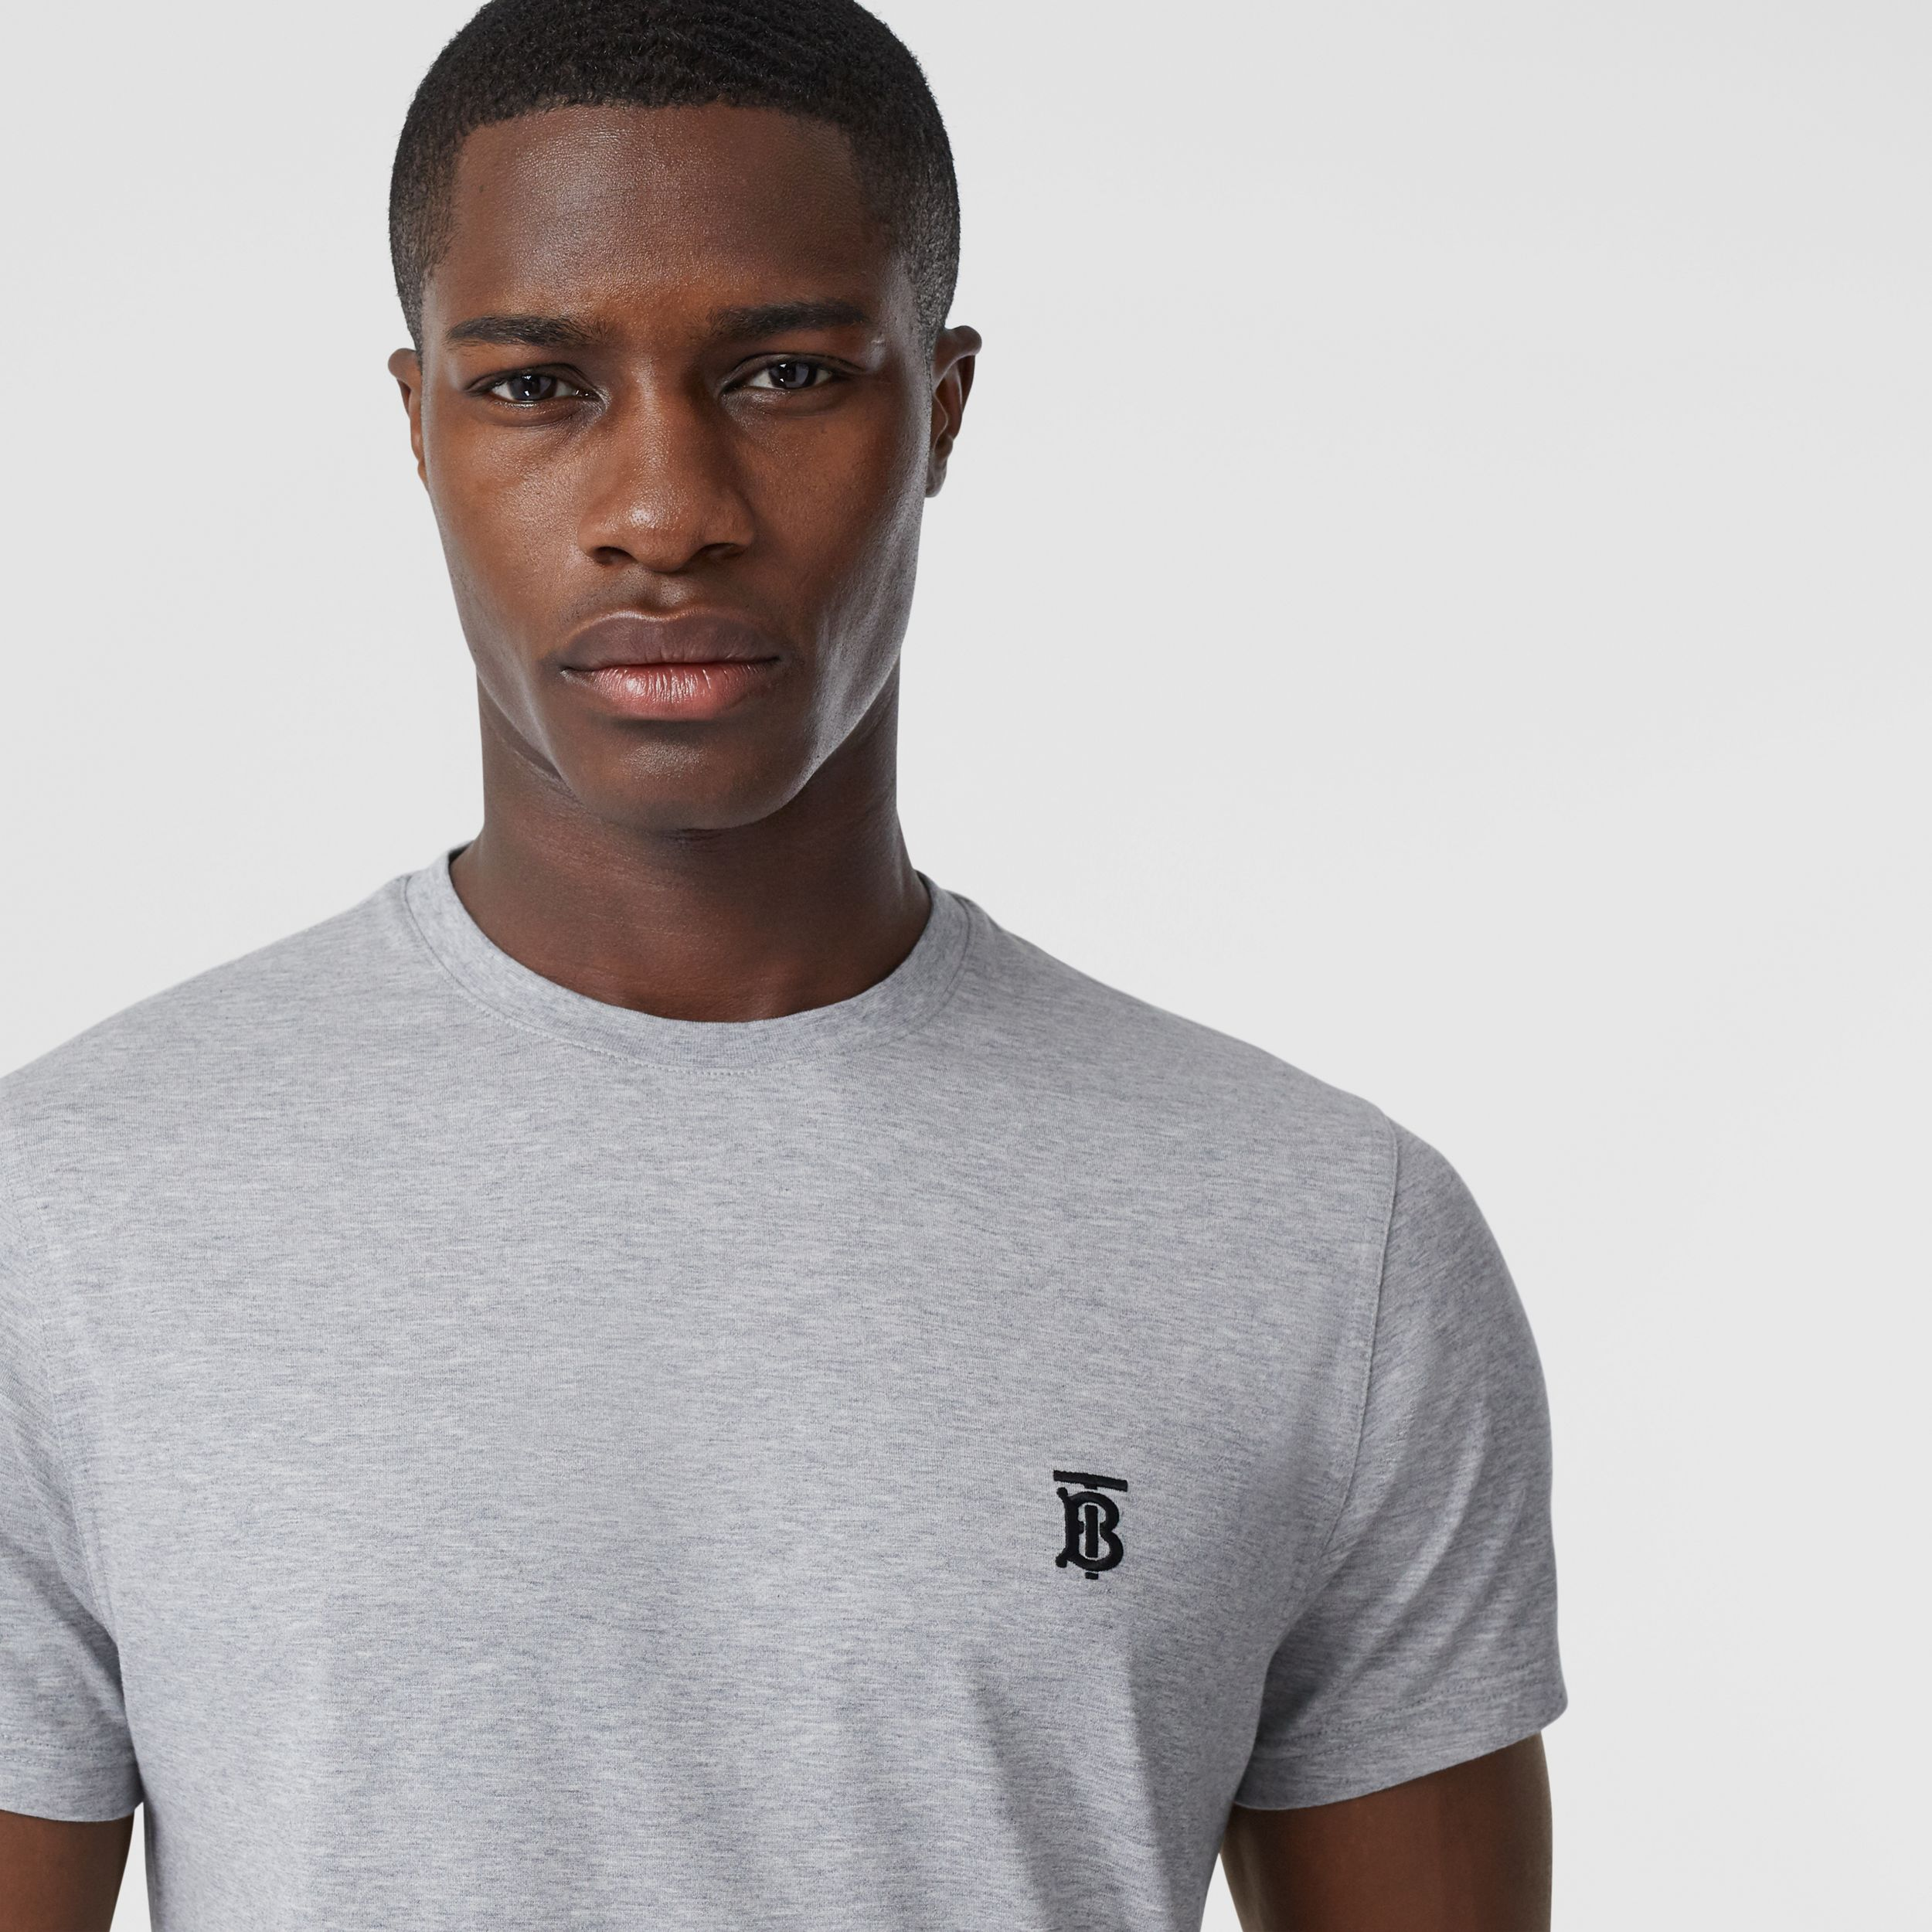 Monogram Motif Cotton T-shirt in Pale Grey Melange - Men | Burberry Australia - 2